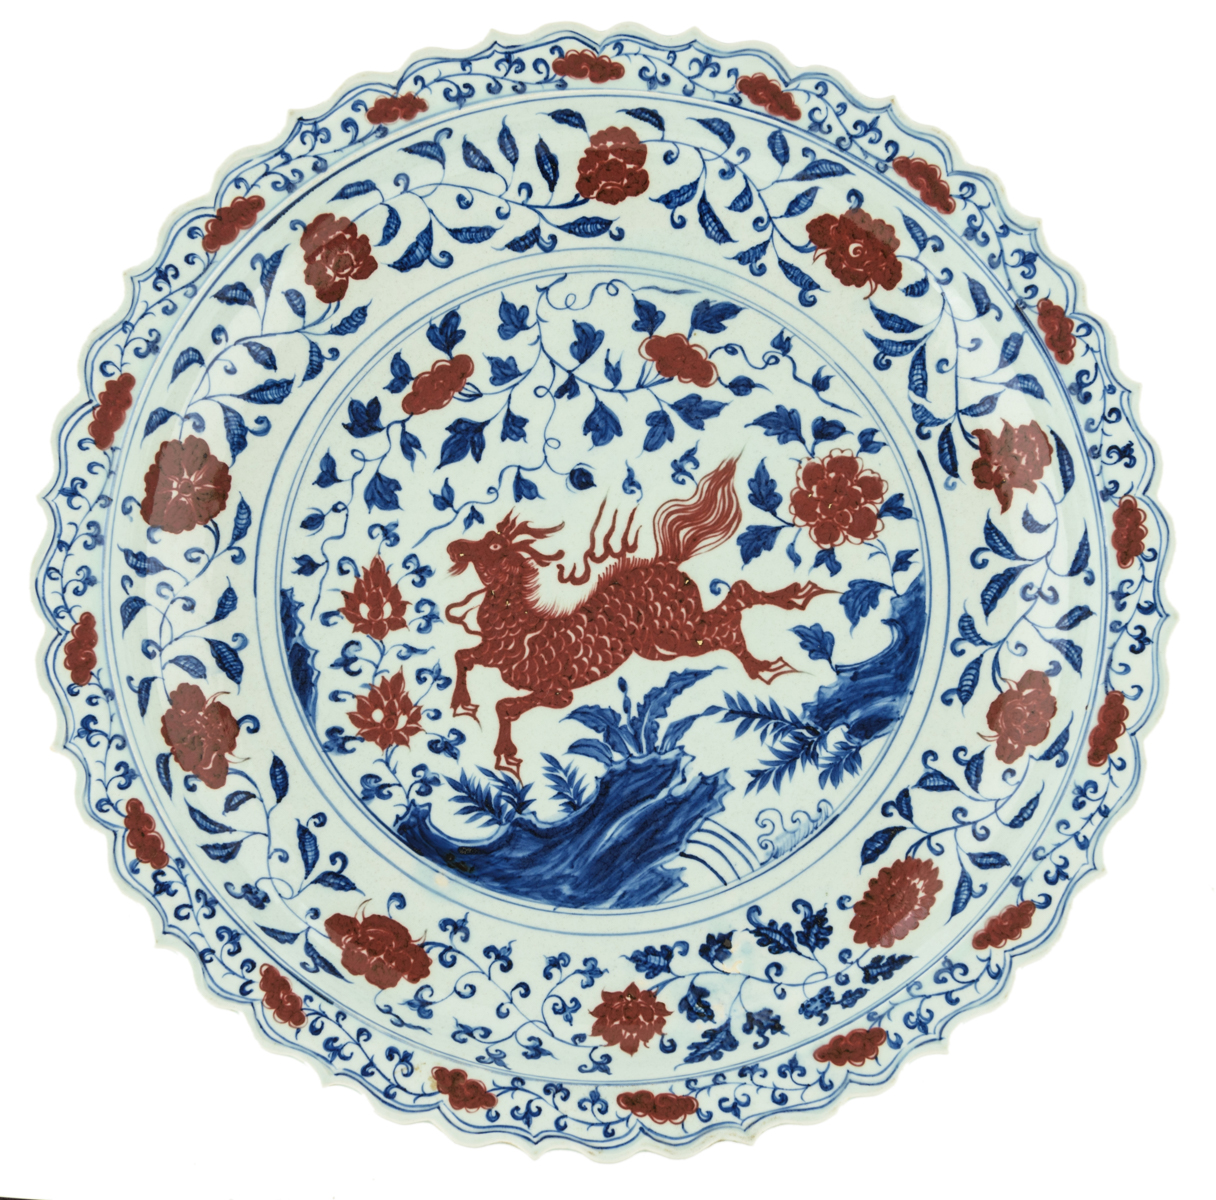 Lot 33 - An imposing Chinese cobalt blue and copper red Ming type charger, decorated with floral motifs and a